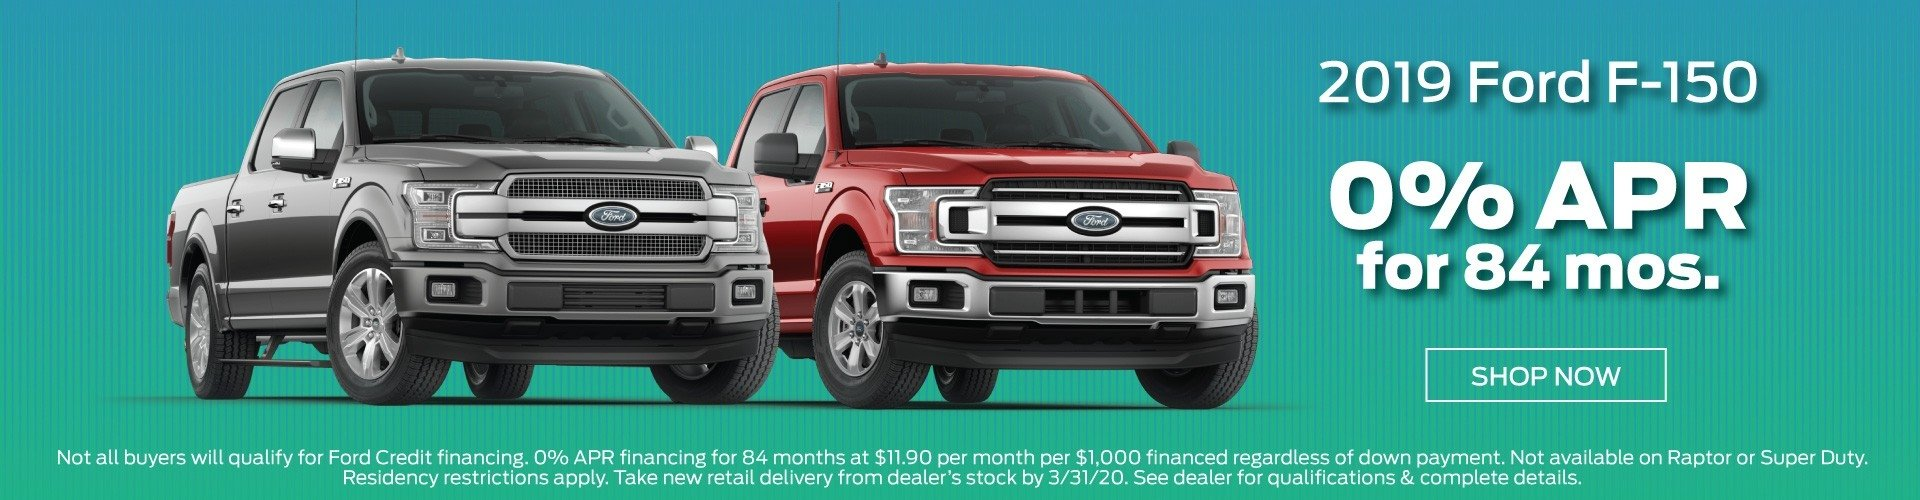 2019 Ford F150 Offer 3-2020